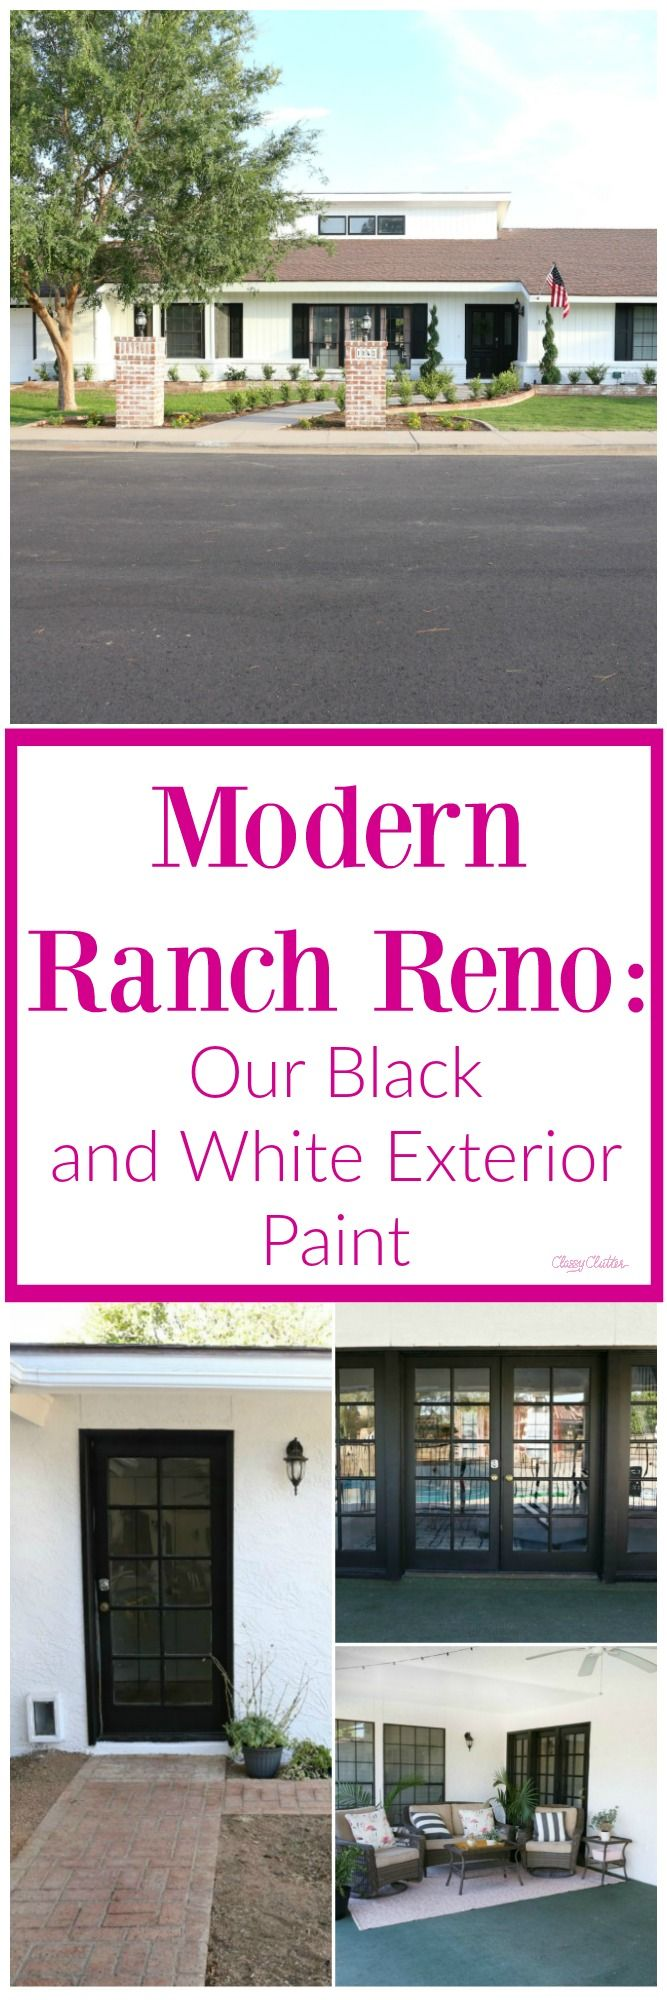 Modern Ranch Reno: Our Black and White Exterior Paint | Exterior ...